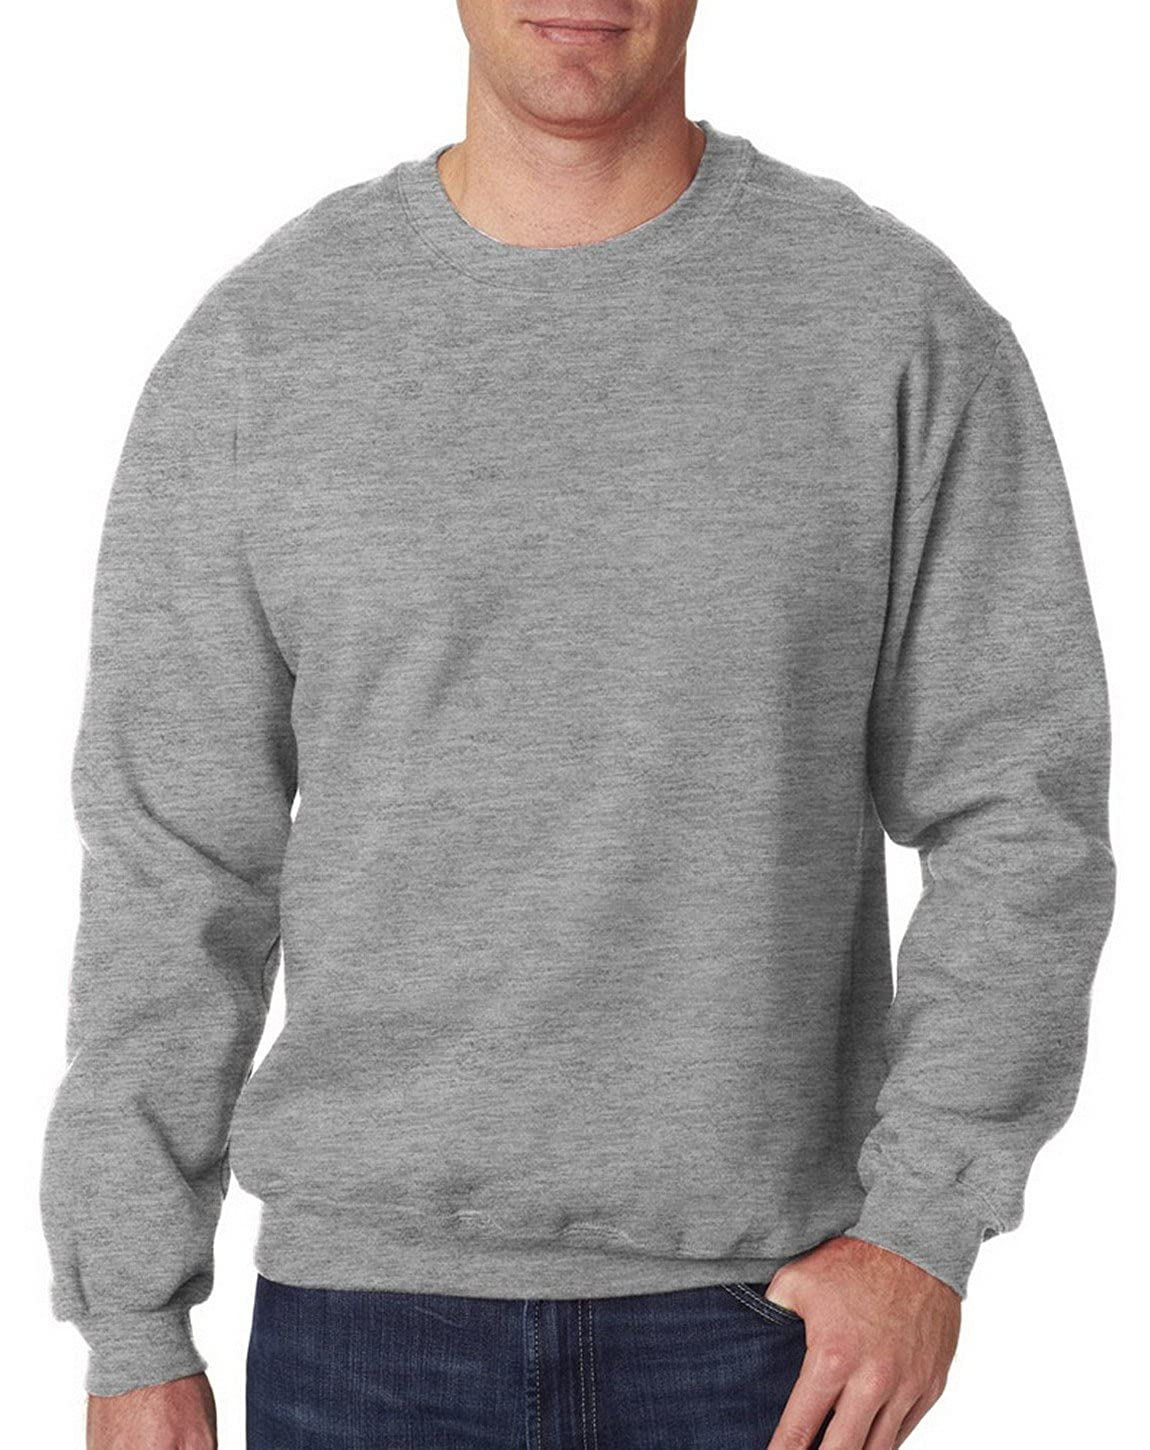 Fashion Gildan 92000 Adult Premium Cotton Crew Neck Sweatshirt